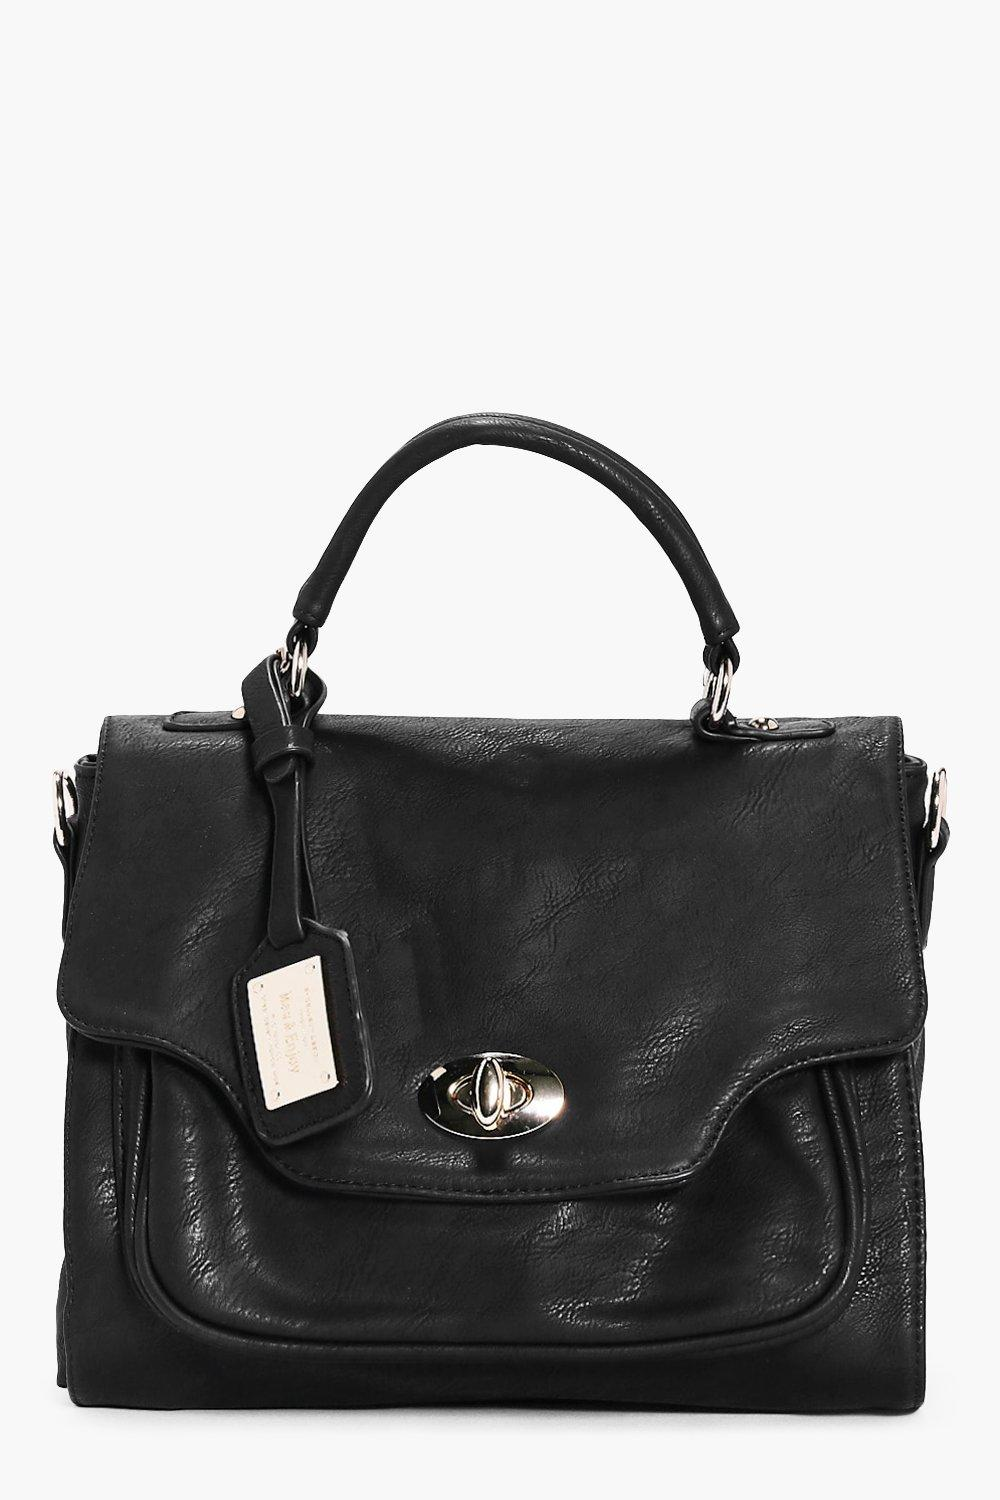 Lara Metal Look Pocket Structured Day Bag